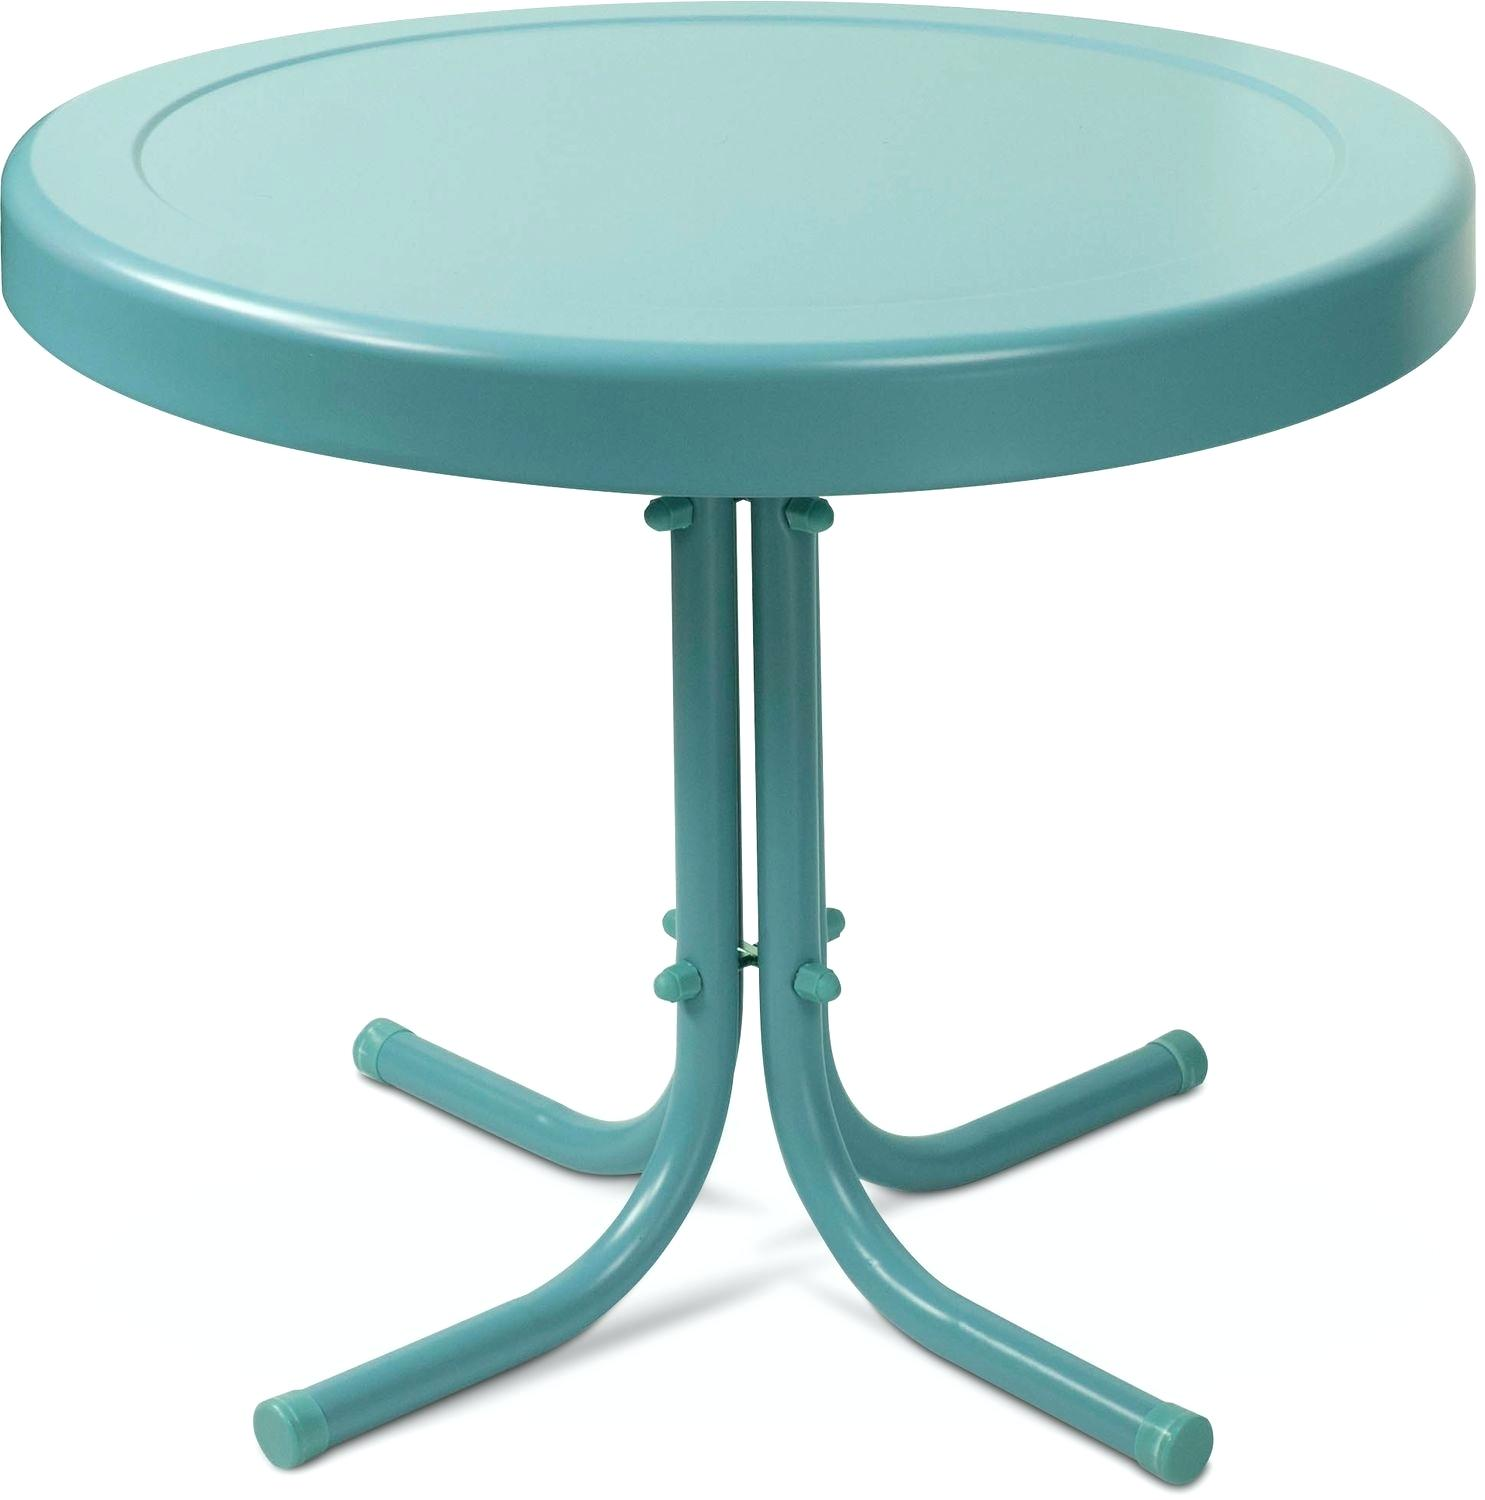 teal side table codeitnow outdoor blue target fretwork accent small industrial end murphy desk magazine roland drum stool dale tiffany glass wall art diy chest coffee furniture